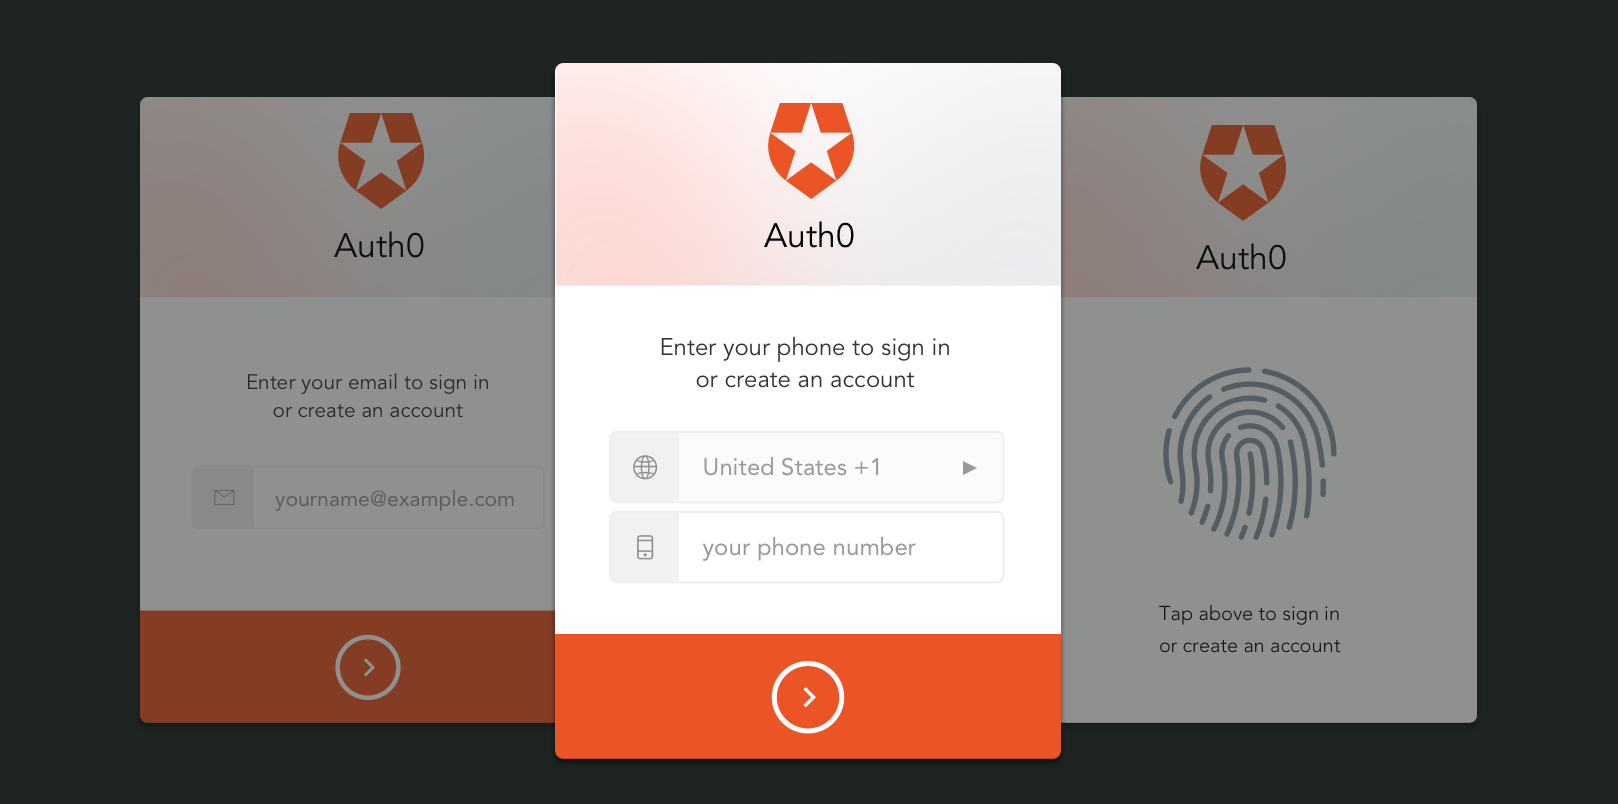 Auth0 wants to make logging in easier with new password-free